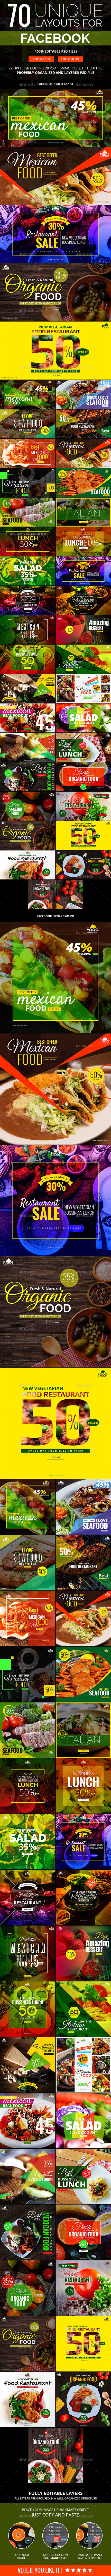 70 Food Facebook Banners - Social Media Web Elements